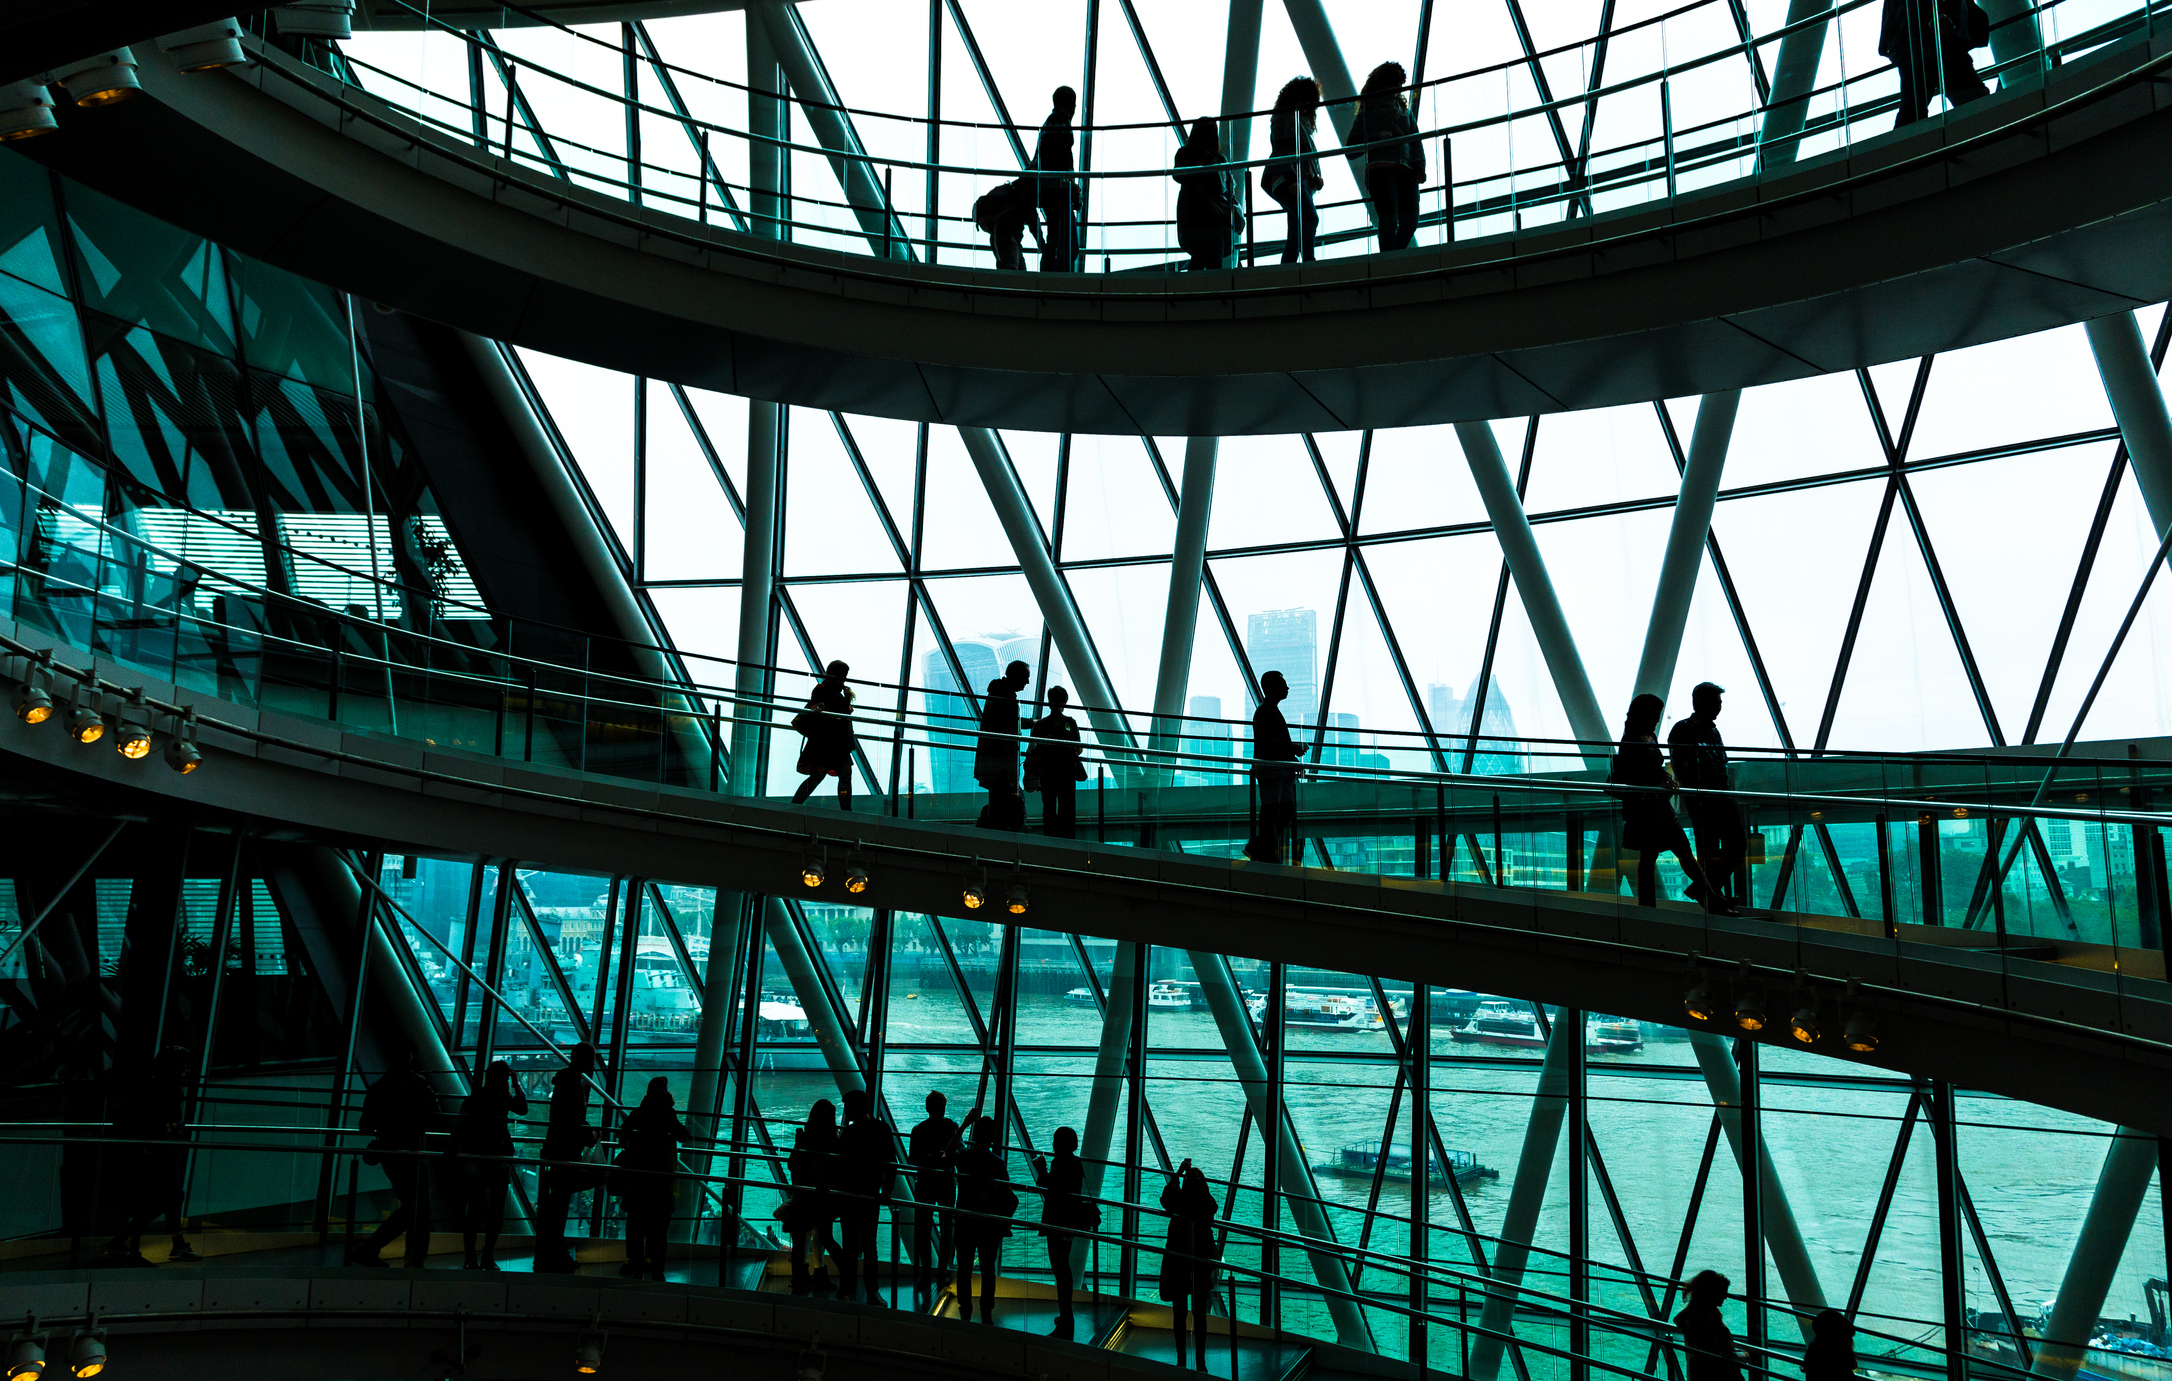 business people on a spiral staircase in a large building